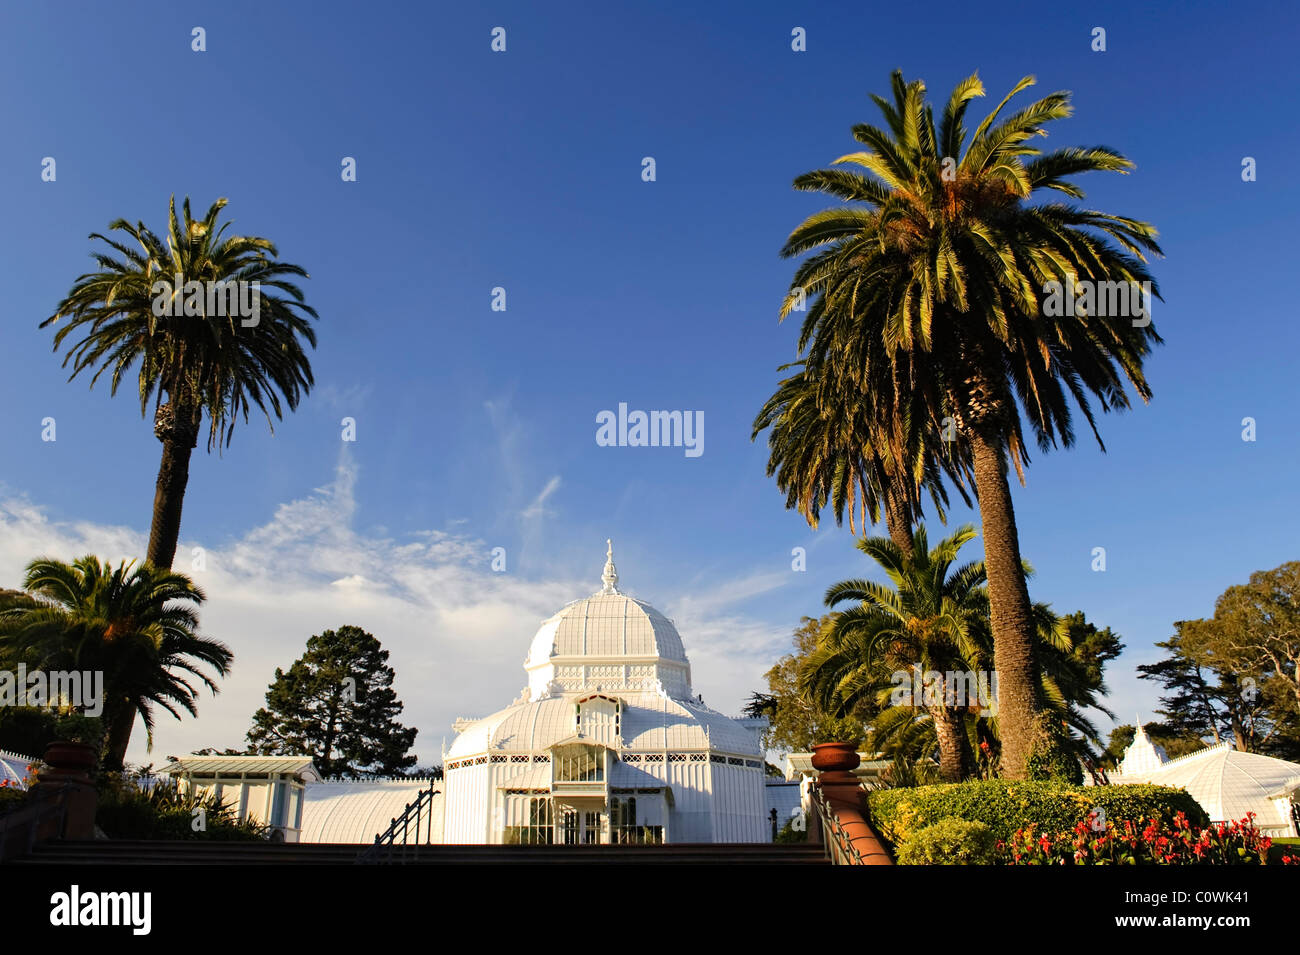 Usa, California, San Francisco, Golden Gate Park, Conservatory of Flowers Stock Photo